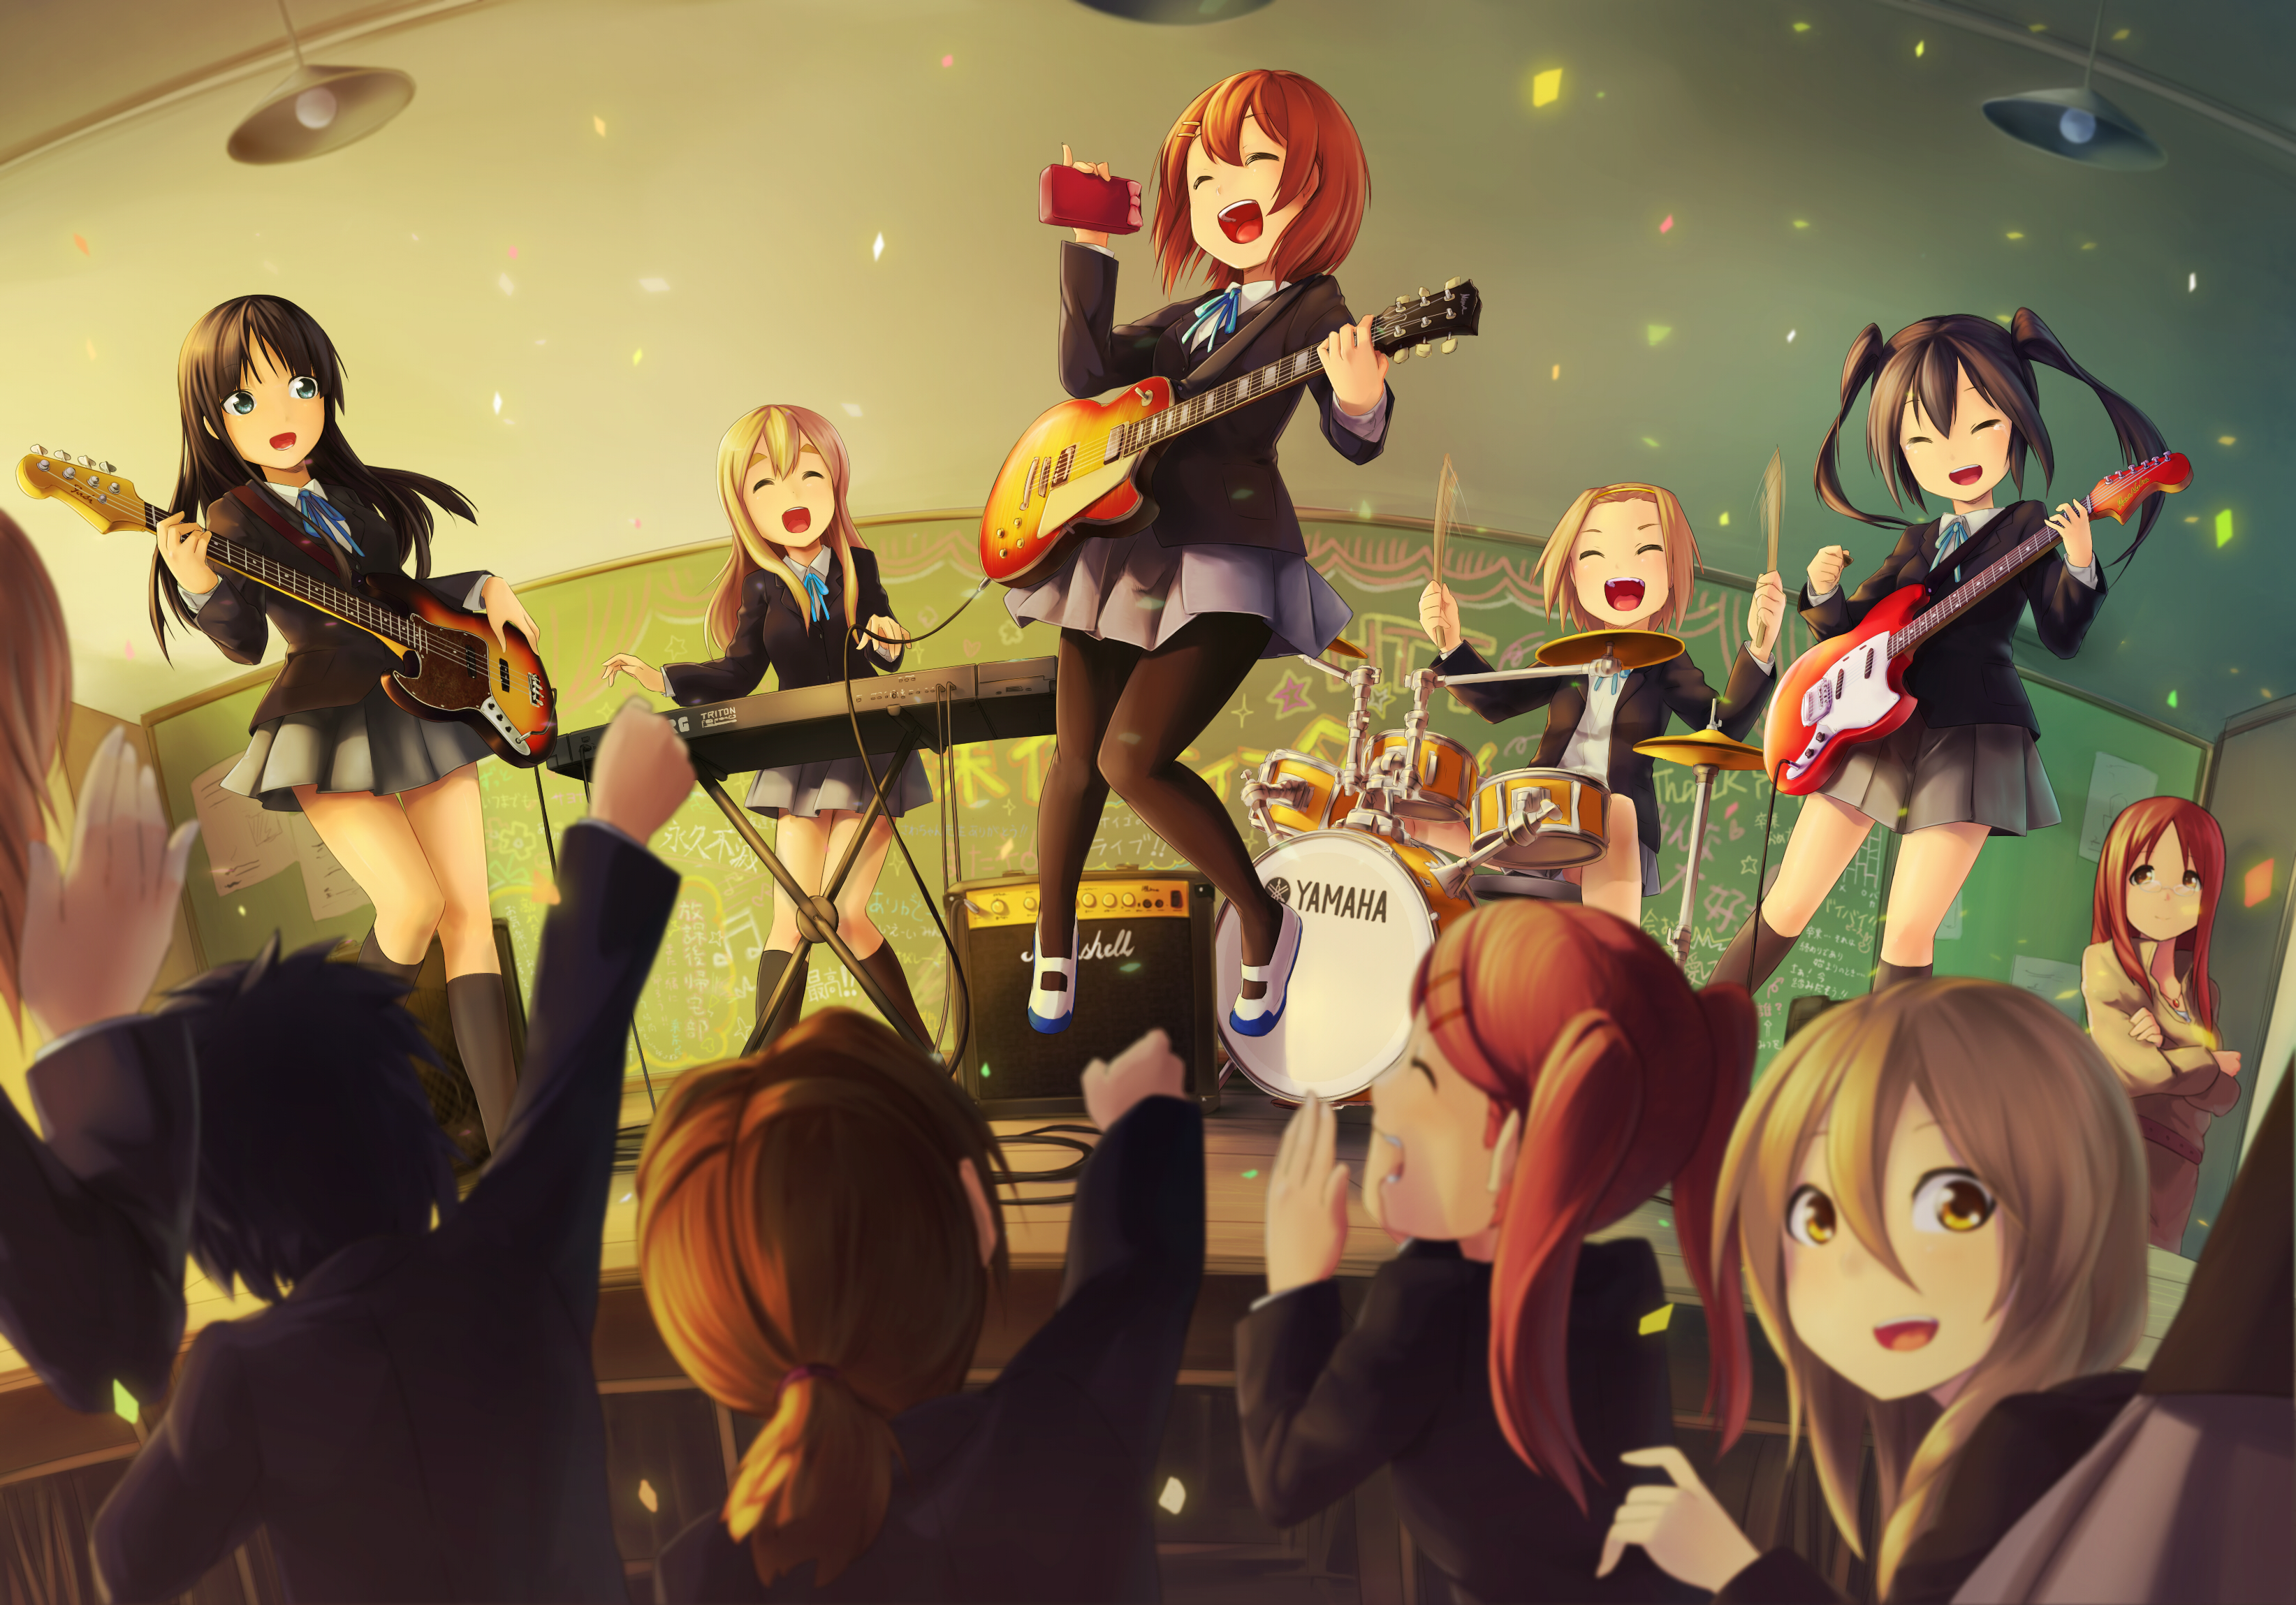 K-ON! Full HD Wallpaper and Background Image   3287x2298 ...